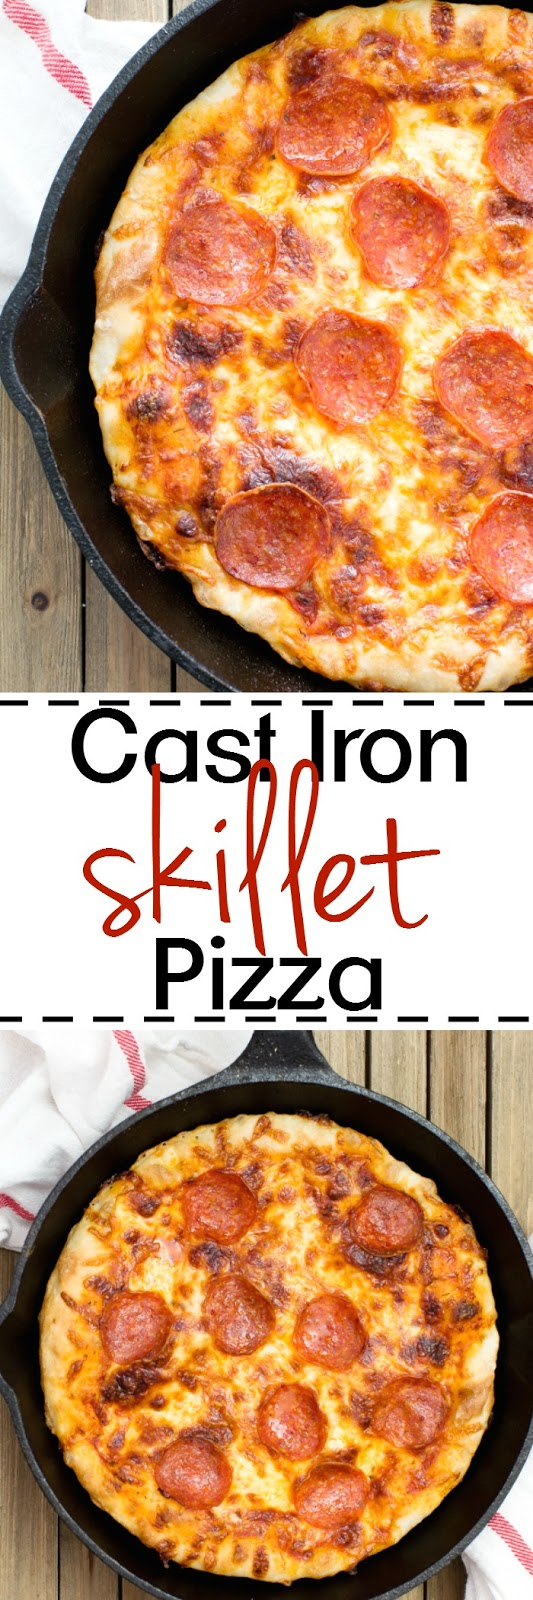 Easy Cast Iron Skillet Pizza